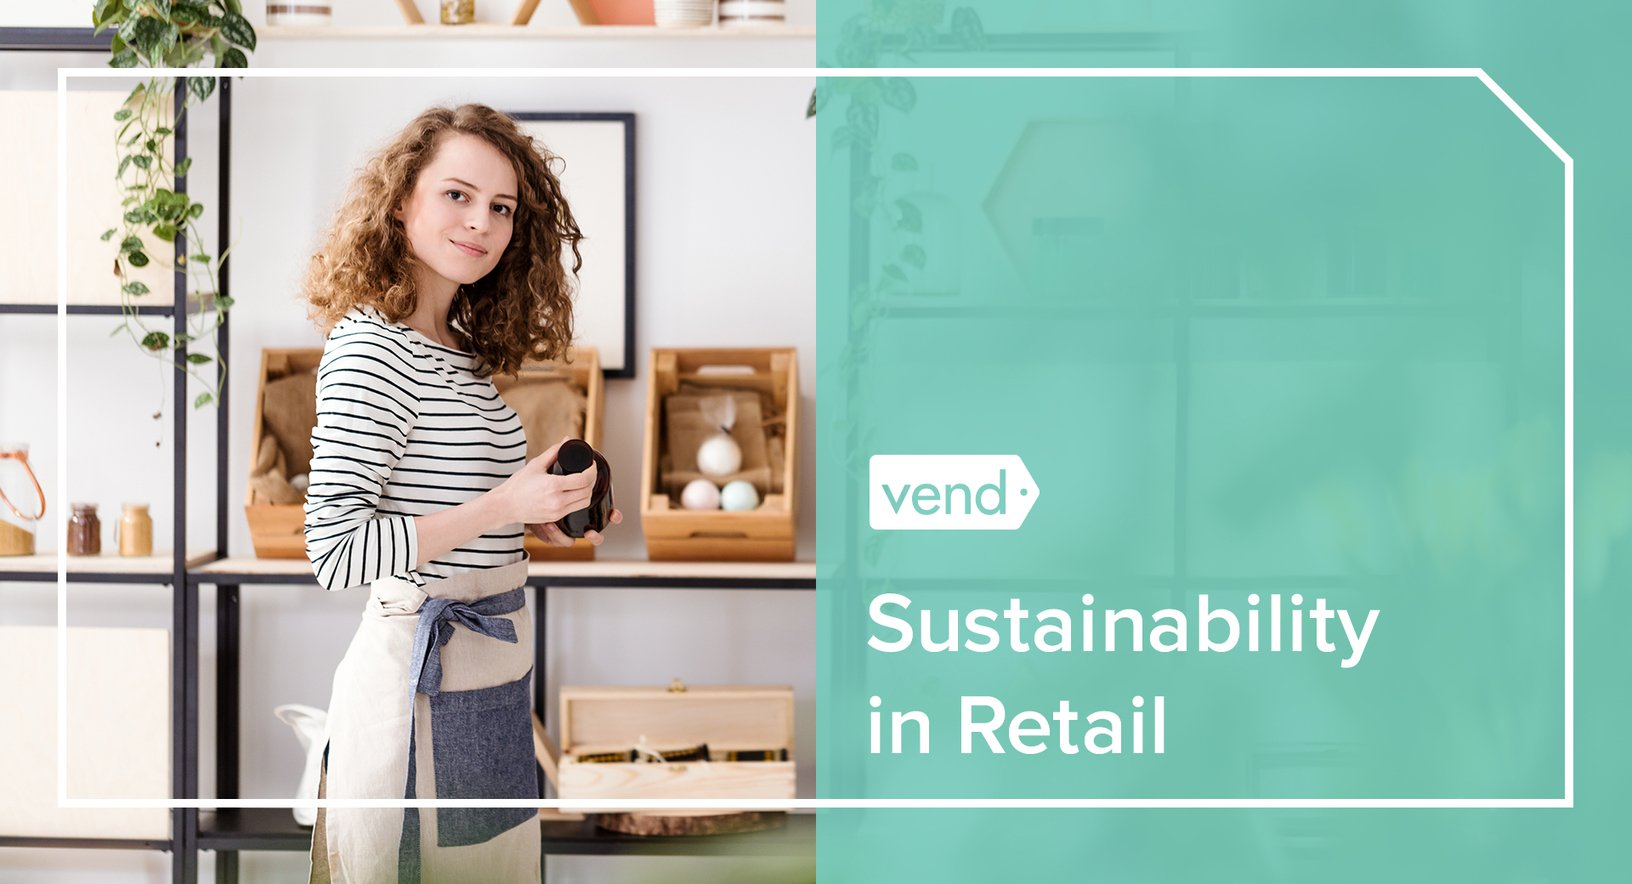 , Sustainability in Retail: 4 Ways to Make Your Business More Sustainable, The Circular Economy